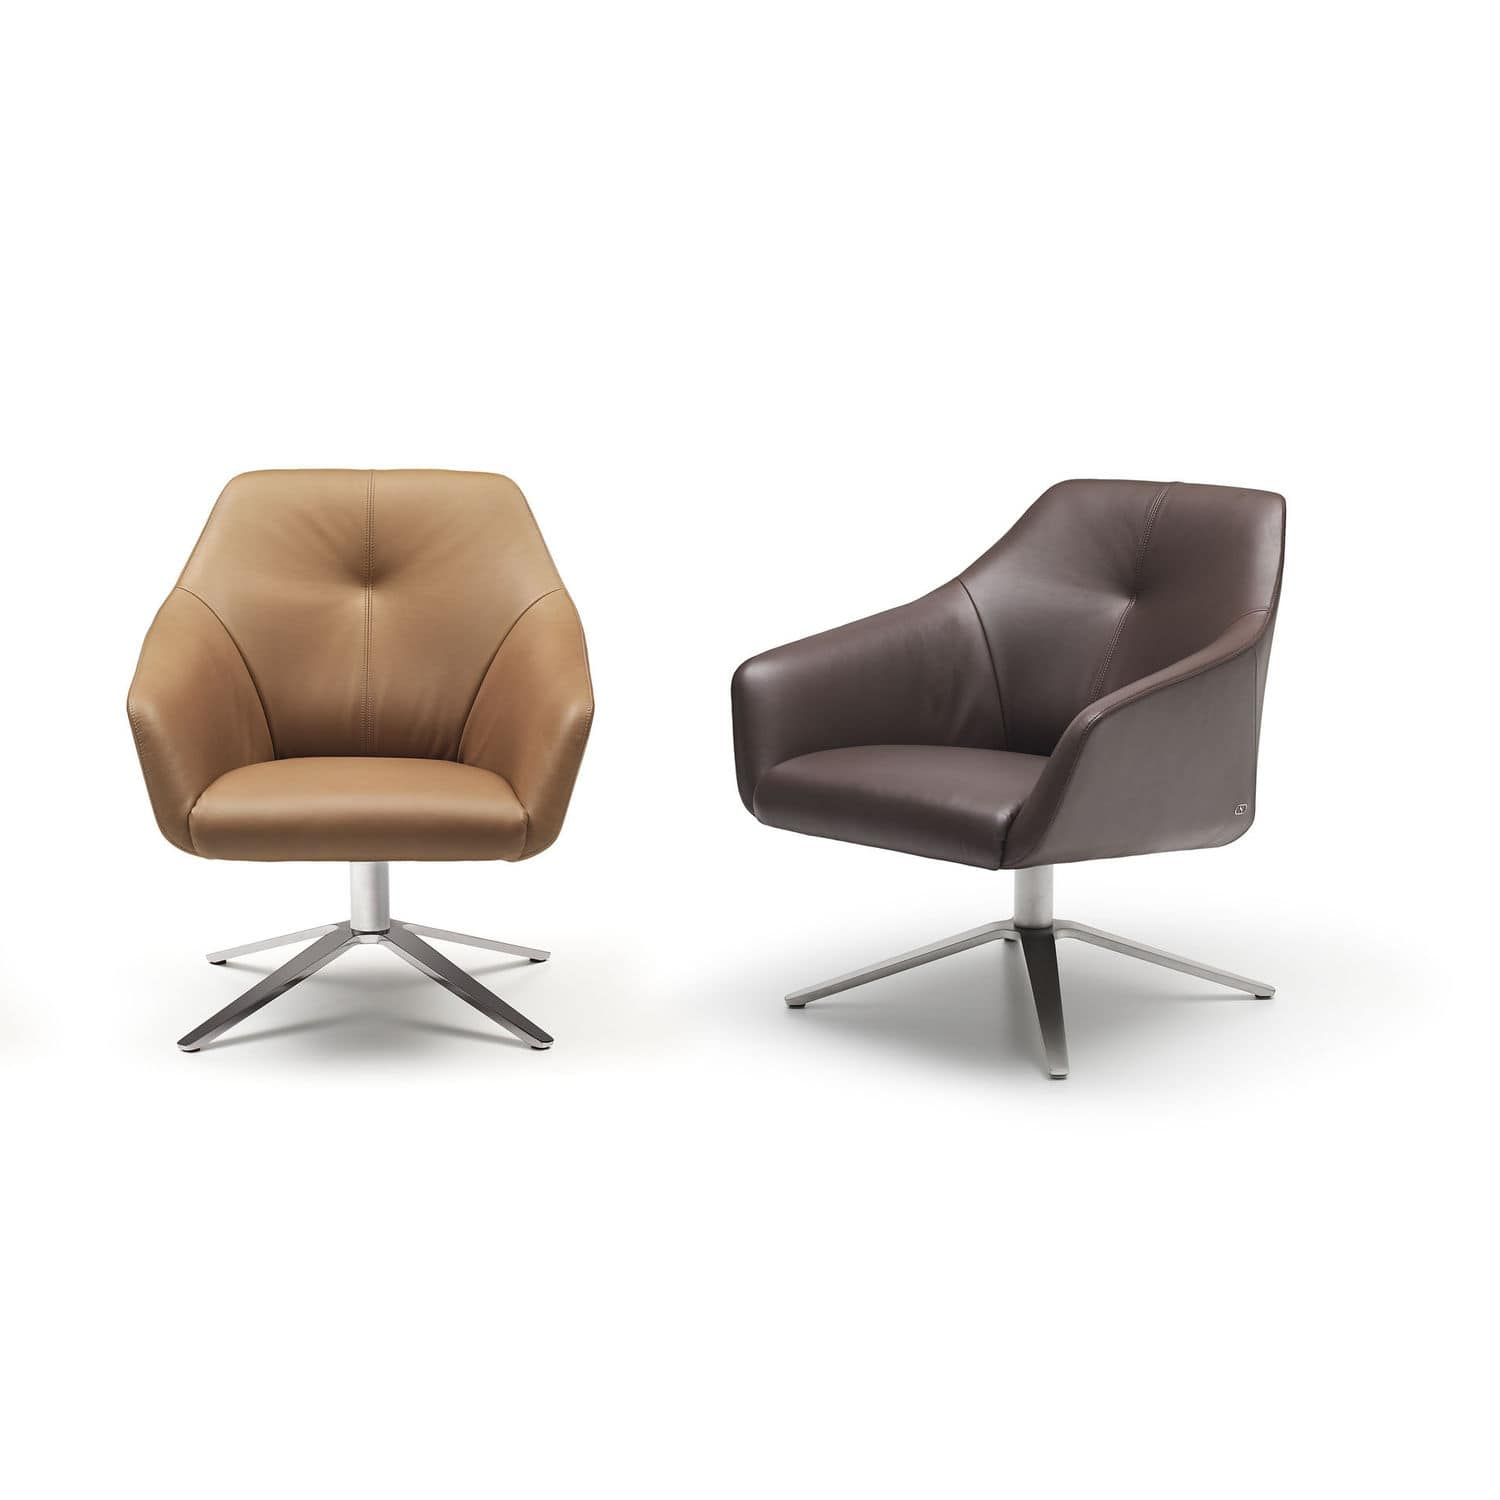 contemporary armchair  leather  swivel  star base  ds  de  - contemporary armchair  leather  swivel  star base  ds